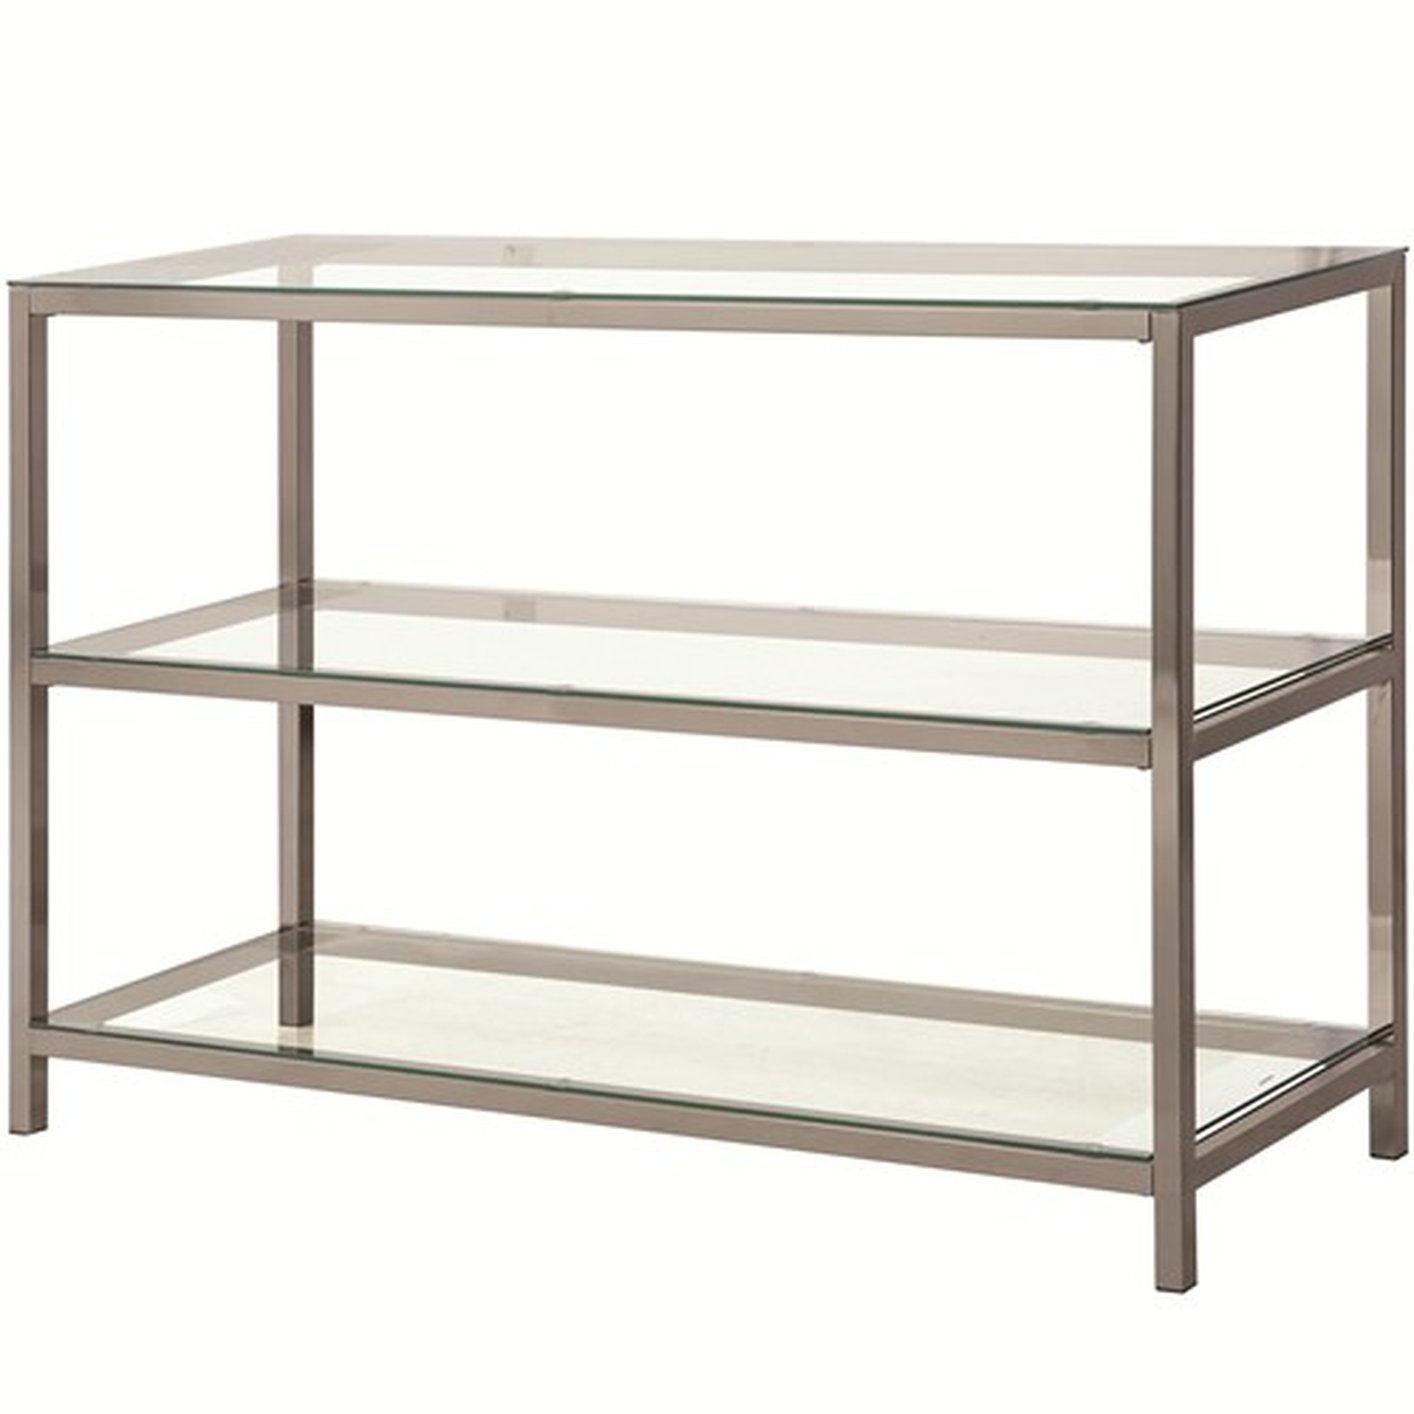 Silver Metal Sofa Table Steal A Sofa Furniture Outlet Los Angeles Ca